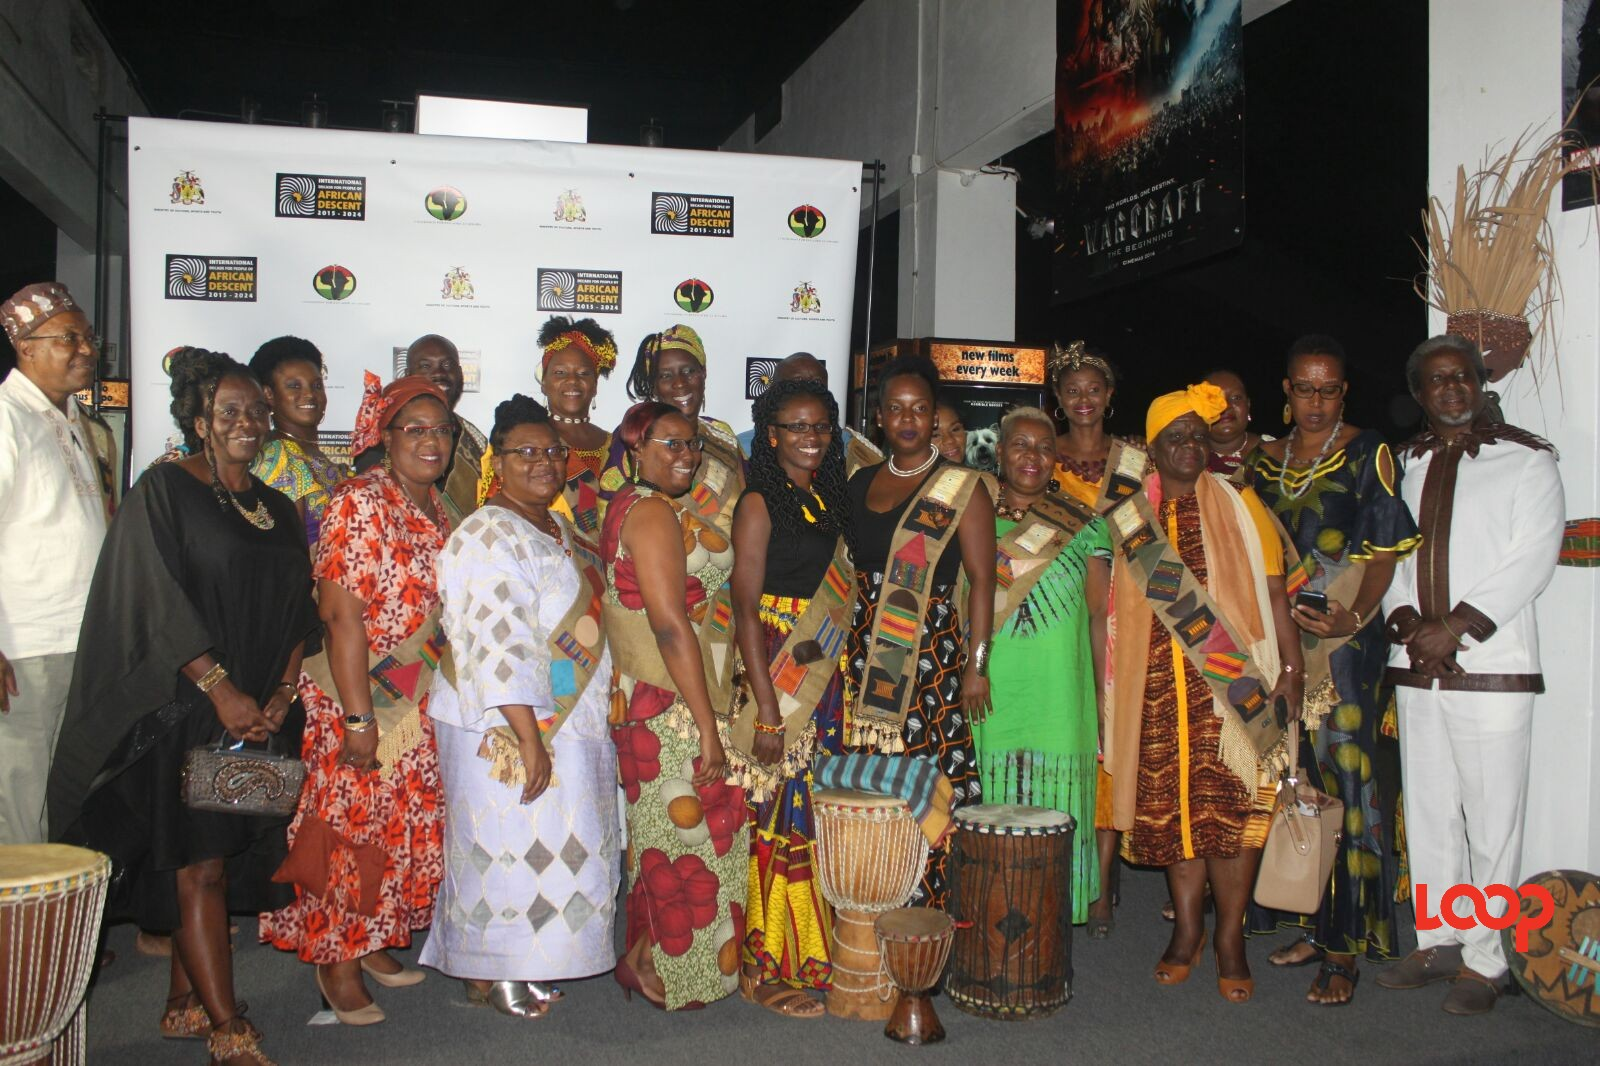 African fashion was on display